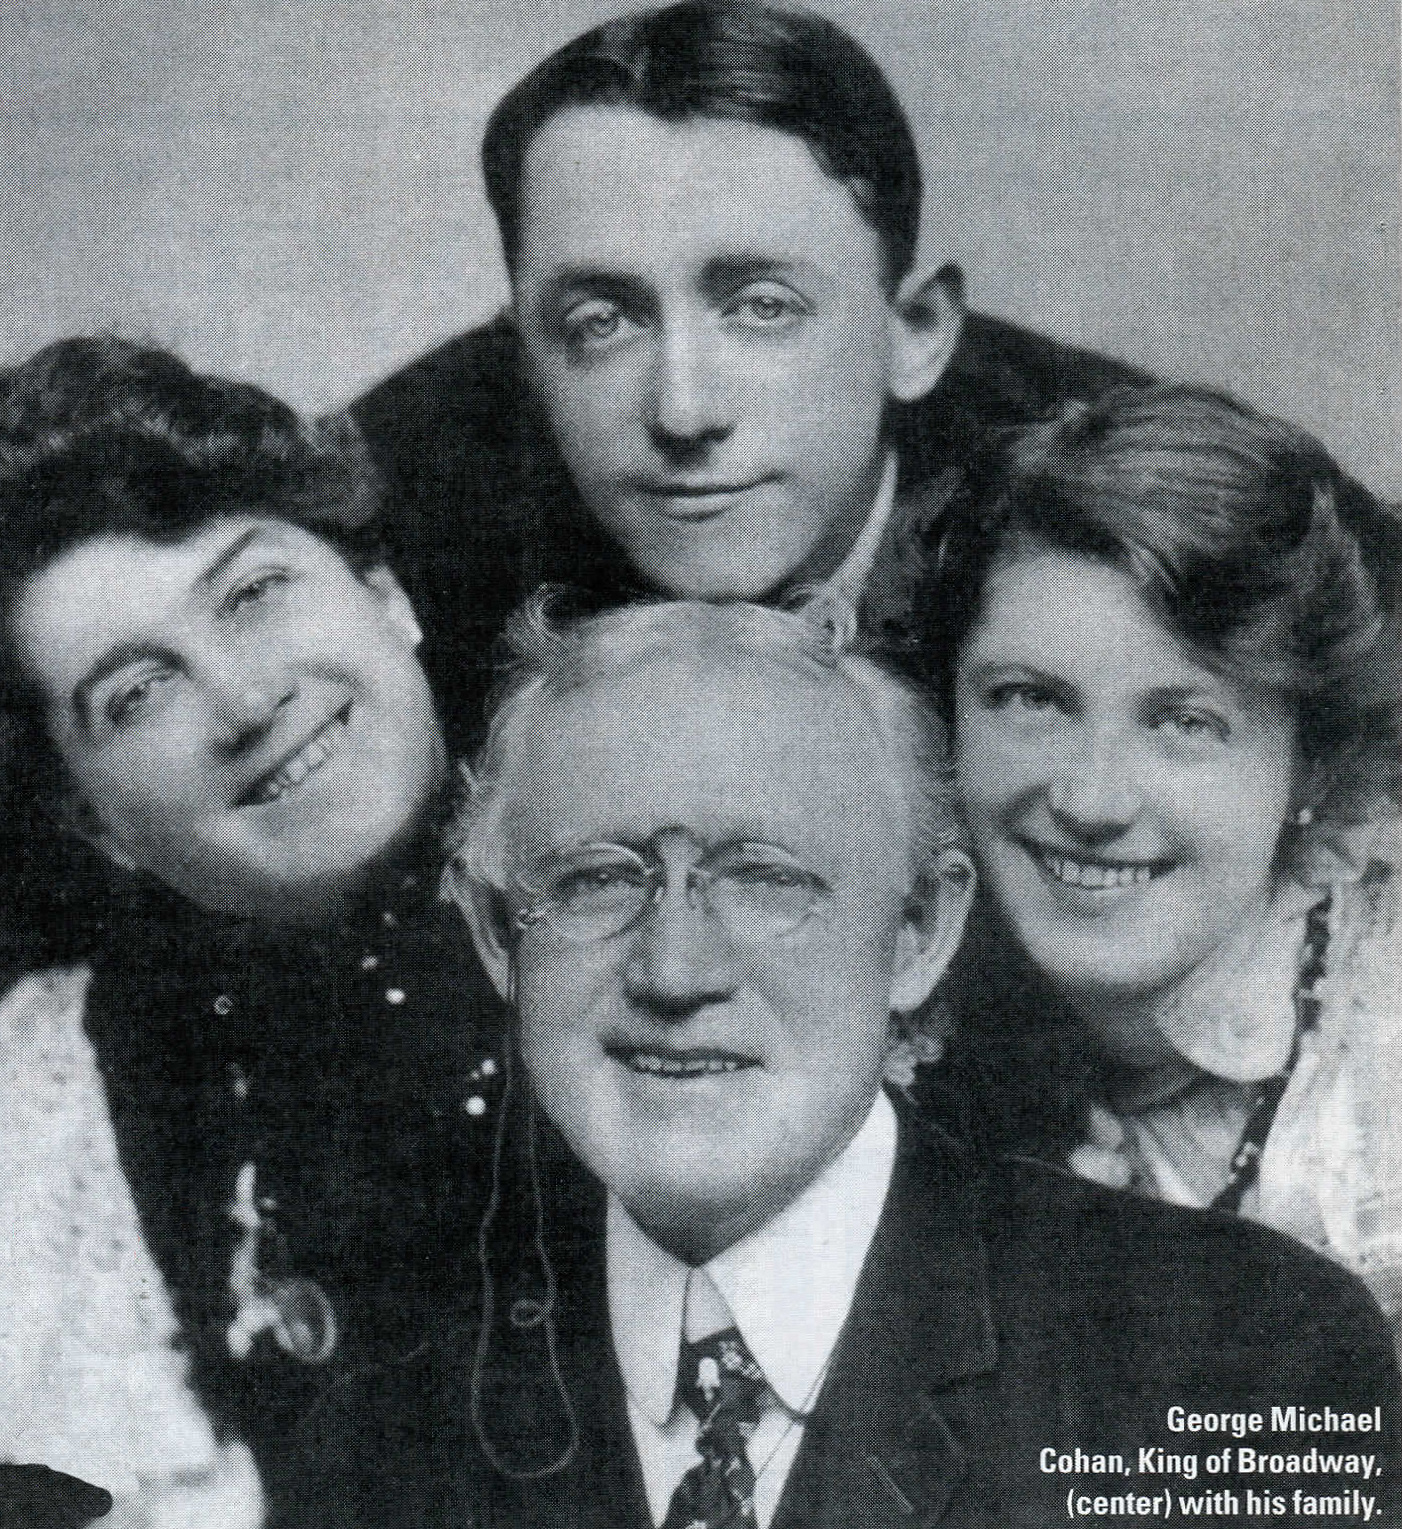 George Michael Cohan, King of Broadway, center, with his family.